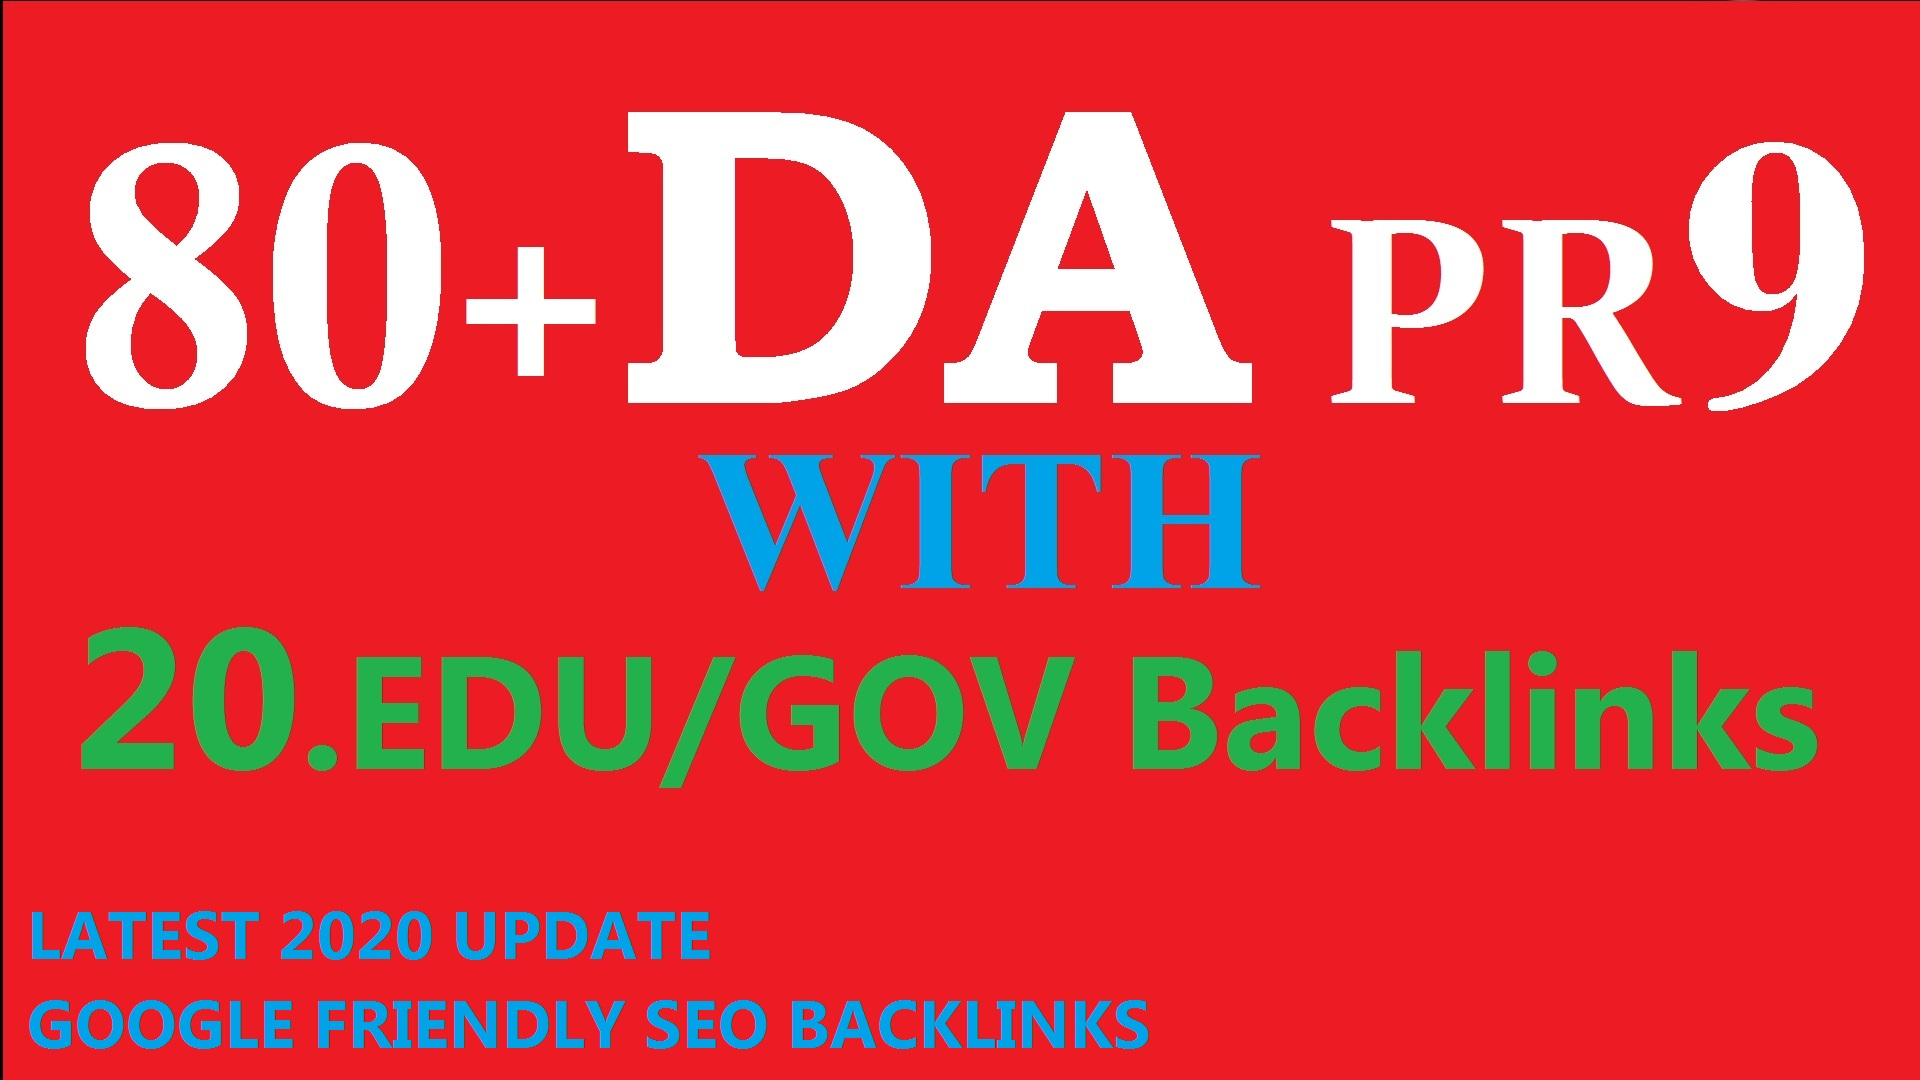 80+DA Links Juicy Boost your Ranking on Google 40 PR9 with 20 edu/gov High DA PR BacLinks to RANK yo